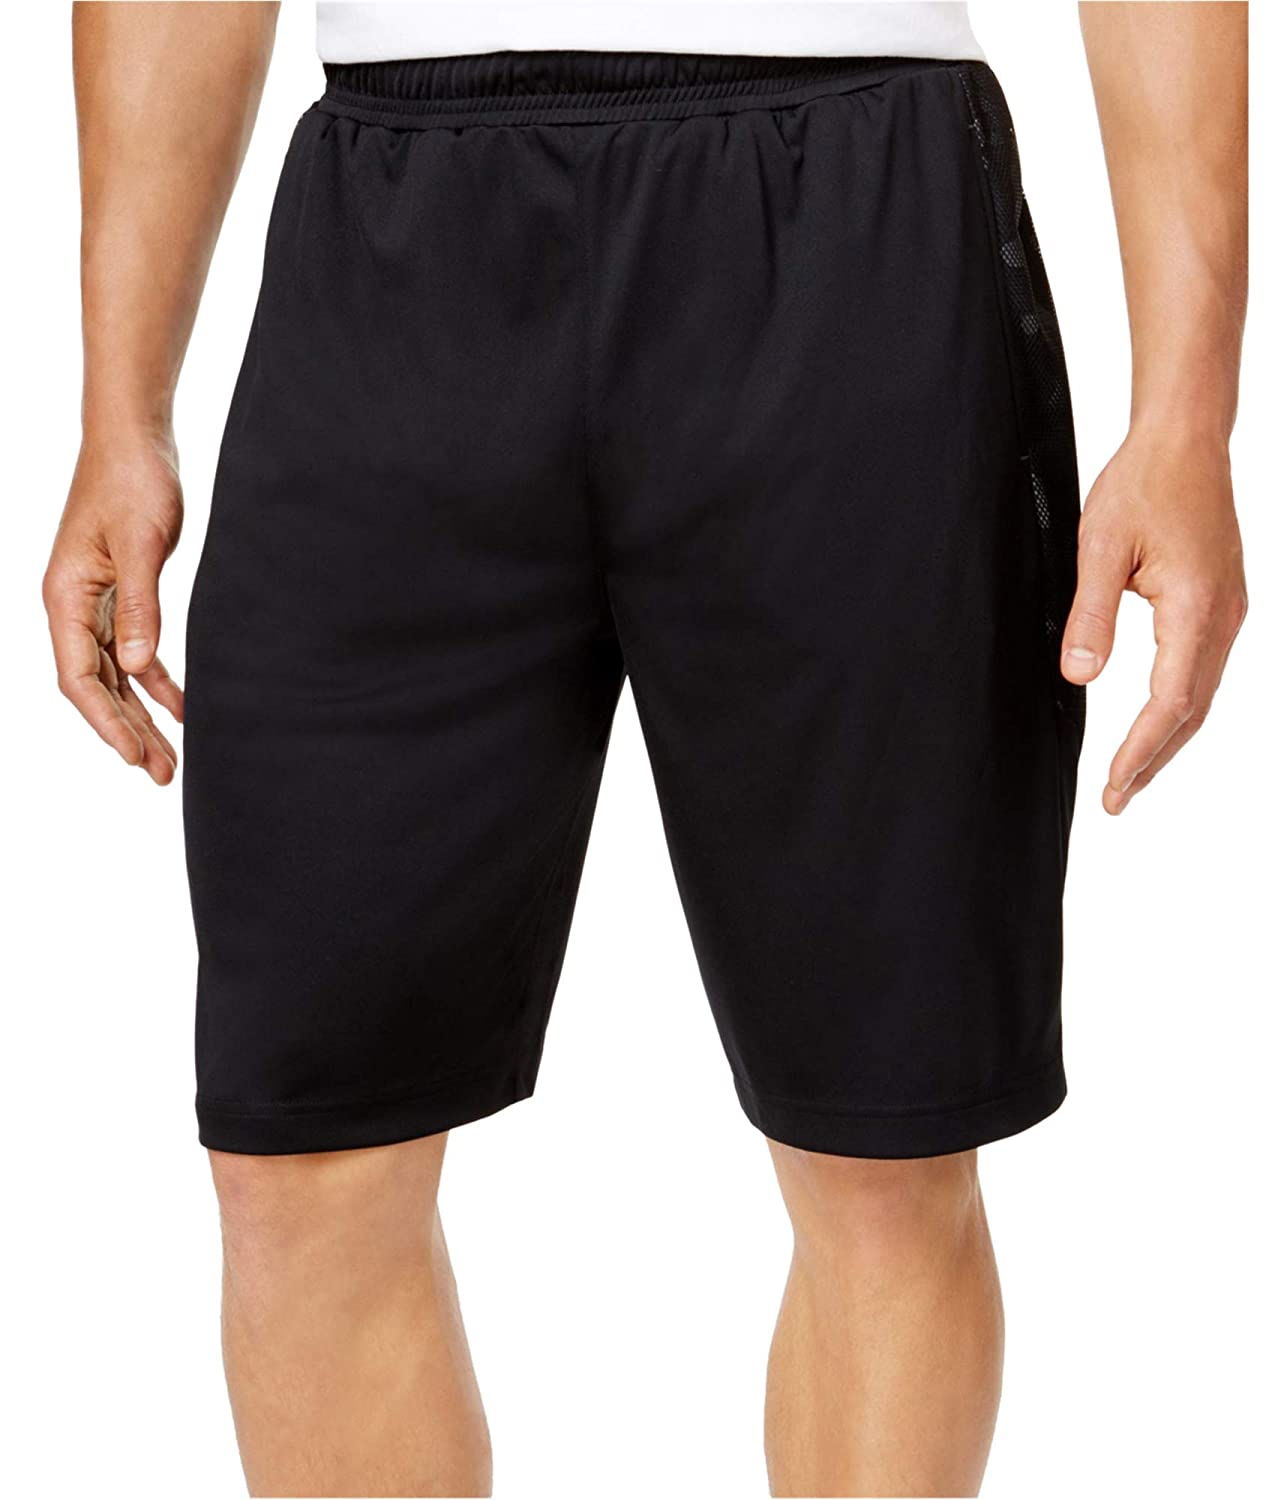 Ideology Mens Camo Insert Athletic Workout Shorts